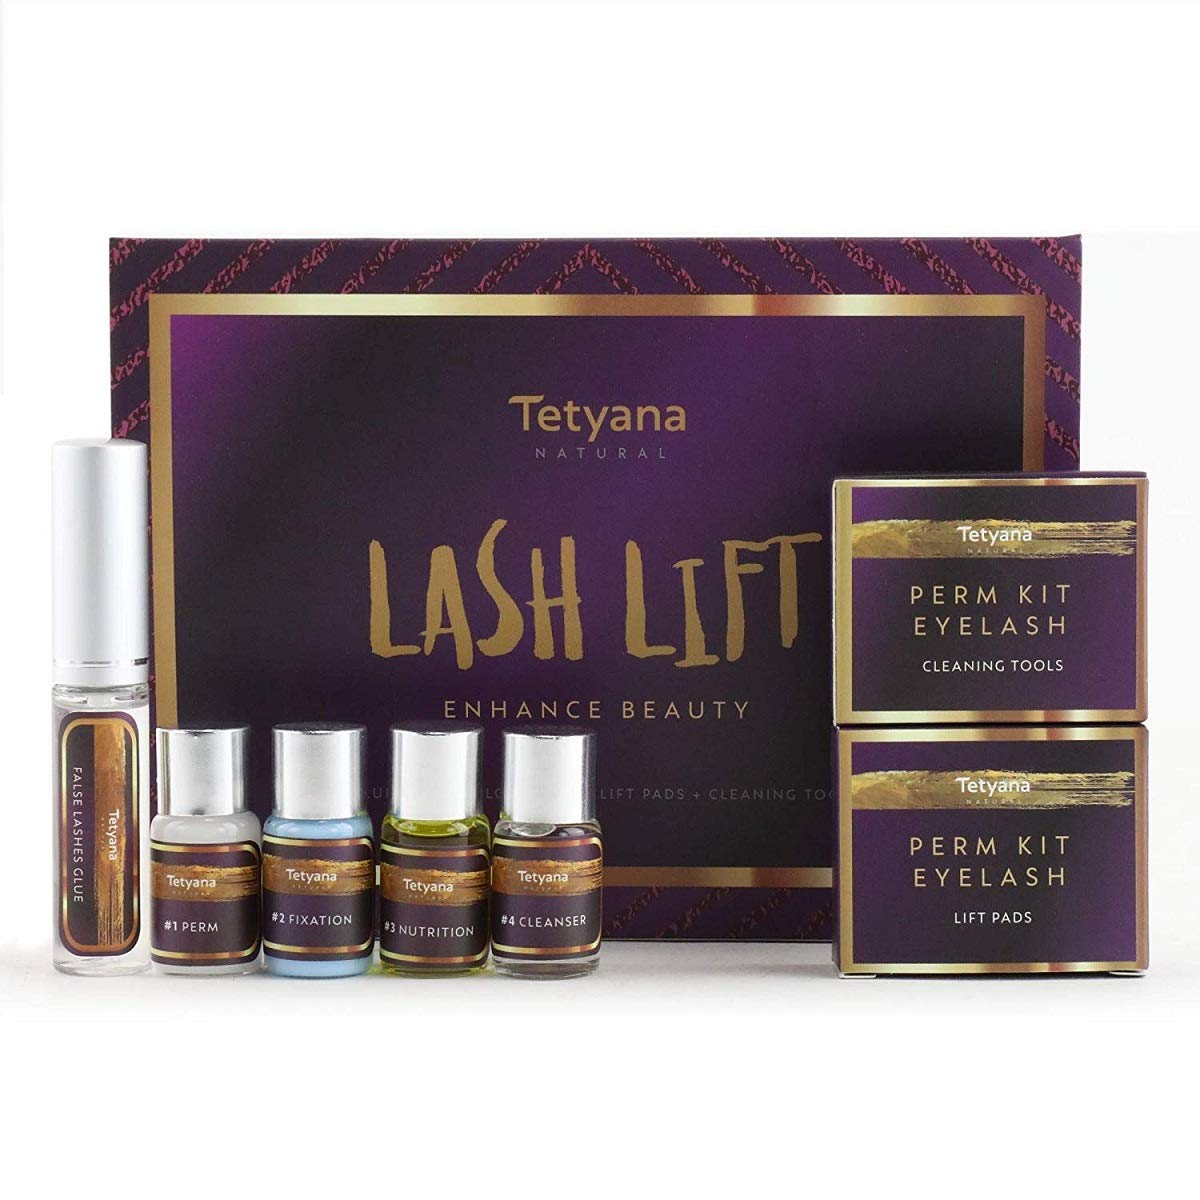 Tetyana naturals Eyelash Perm Kit, Professional Quality Lash Lift, Semi-Permanent Curling Perming Wave, Lotion & Liquid Set by Tetyana naturals